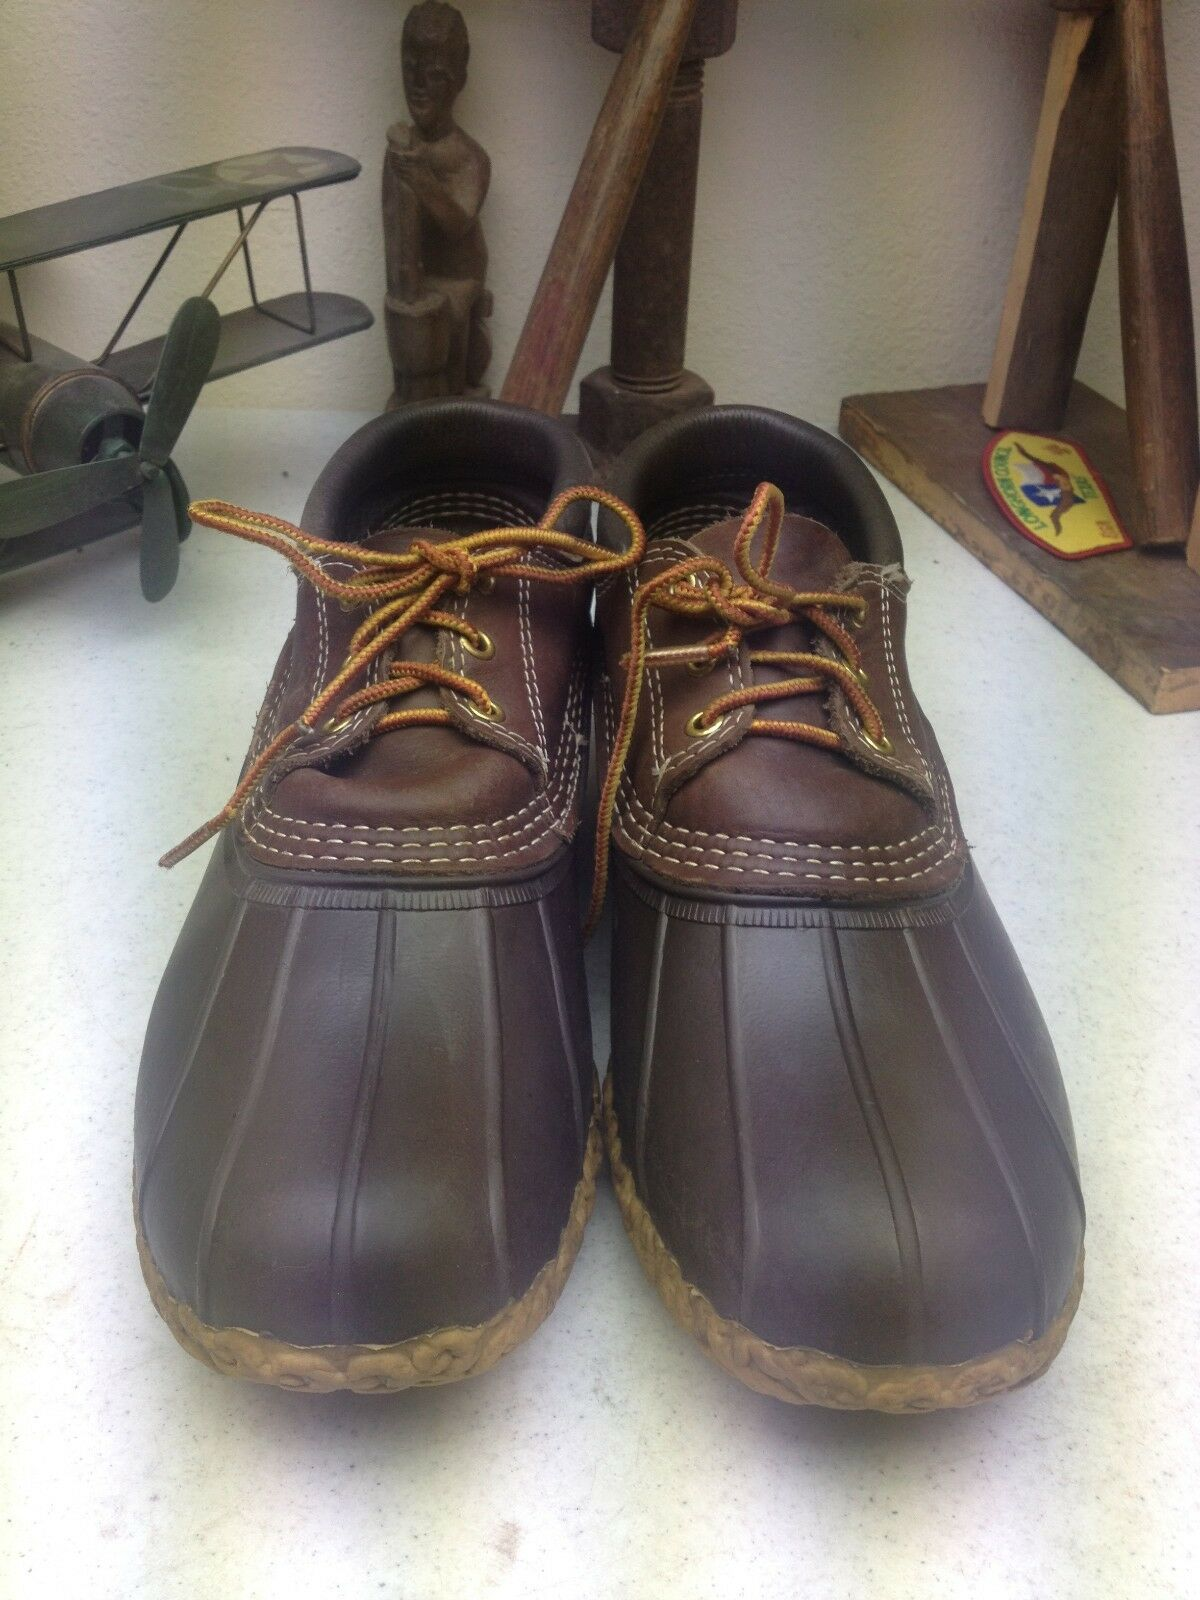 VINTAGE DISTRESSED MADE IN IN IN USA BEAN Stiefel DUCK HUNTING RAIN Stiefel 9.5-10.5 M 2f2c95